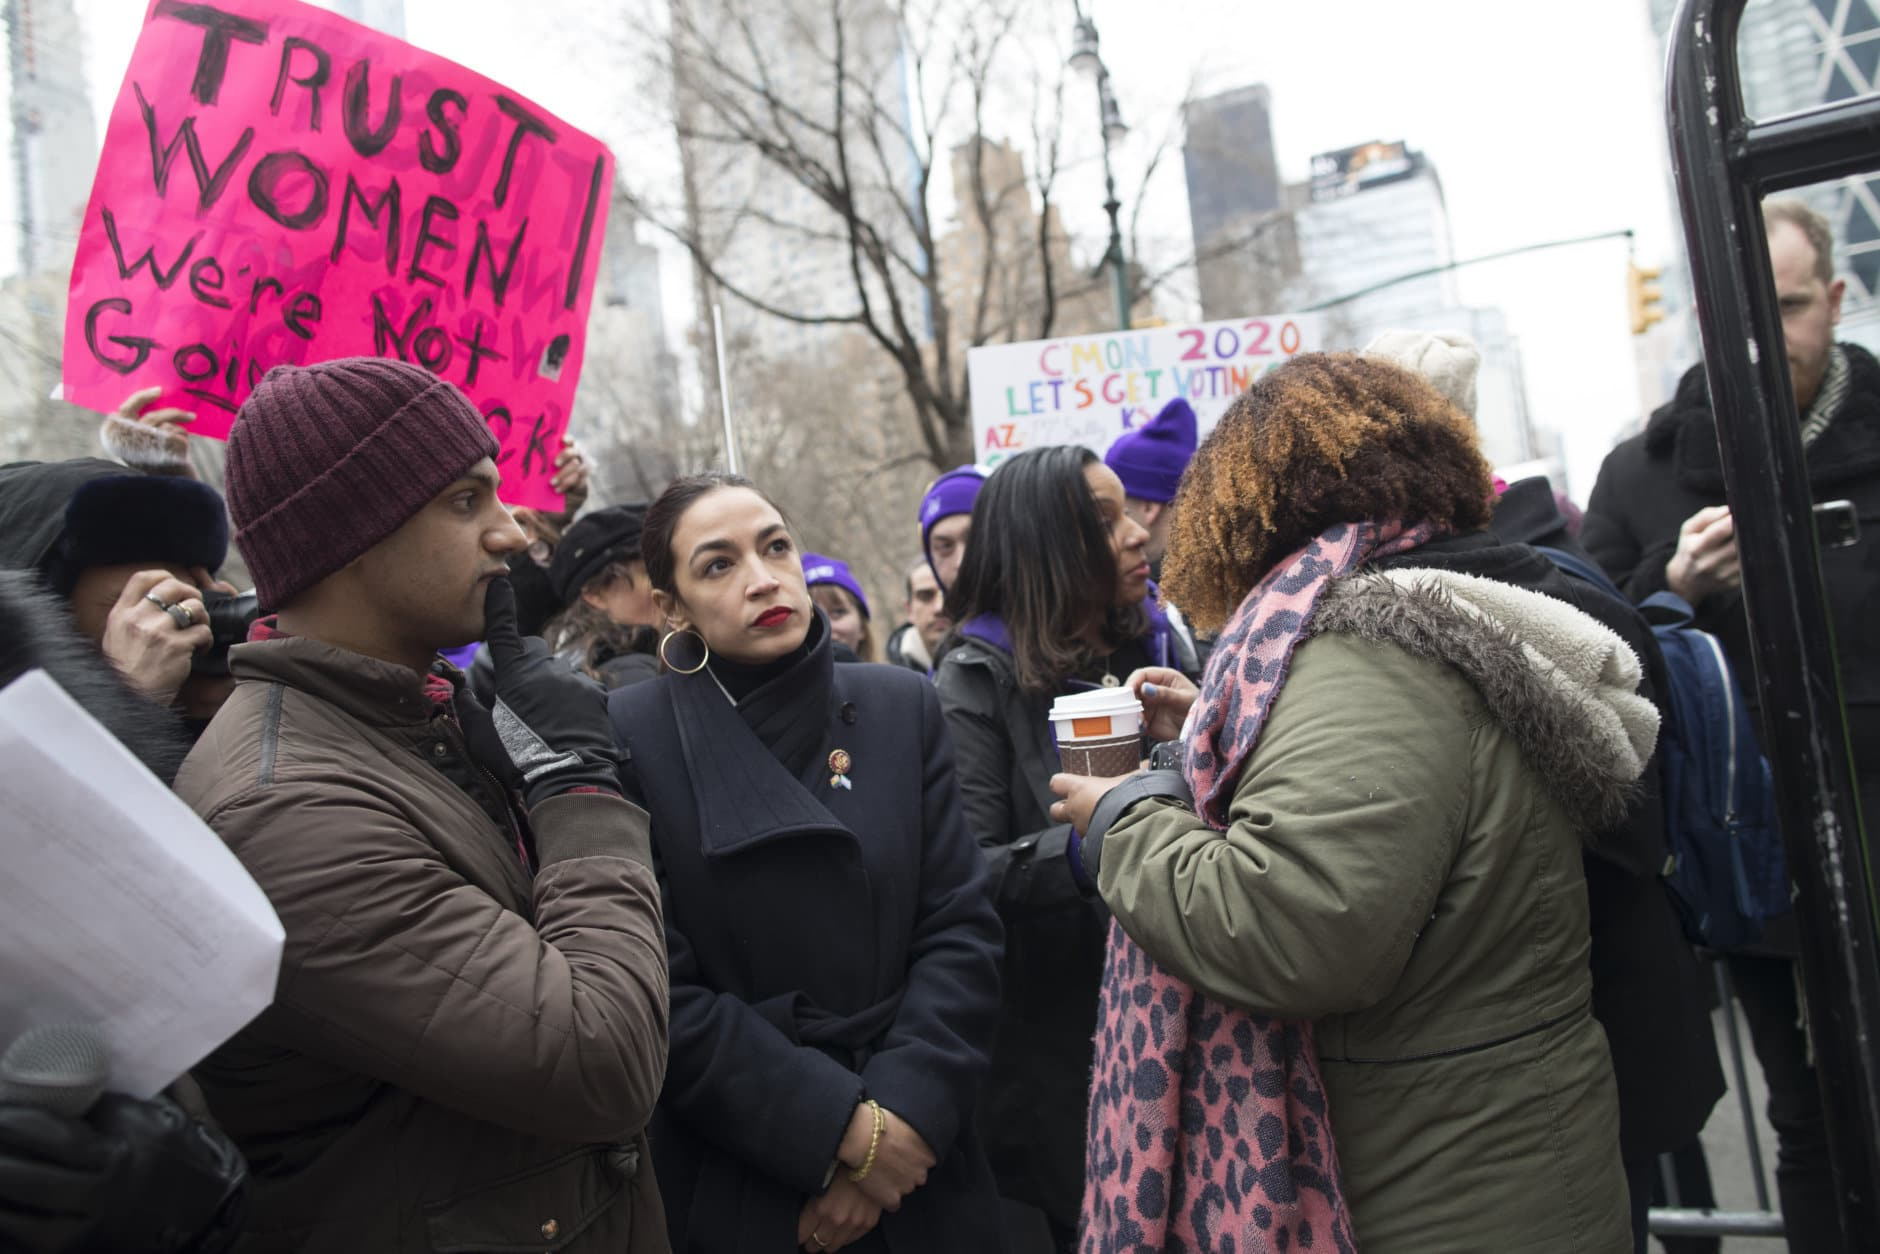 Rep. Alexandria Ocasio-Cortez, D-N.Y., waits backstage during the Women's March Alliance, Saturday, Jan. 19, 2019, in New York. (AP Photo/Mary Altaffer)